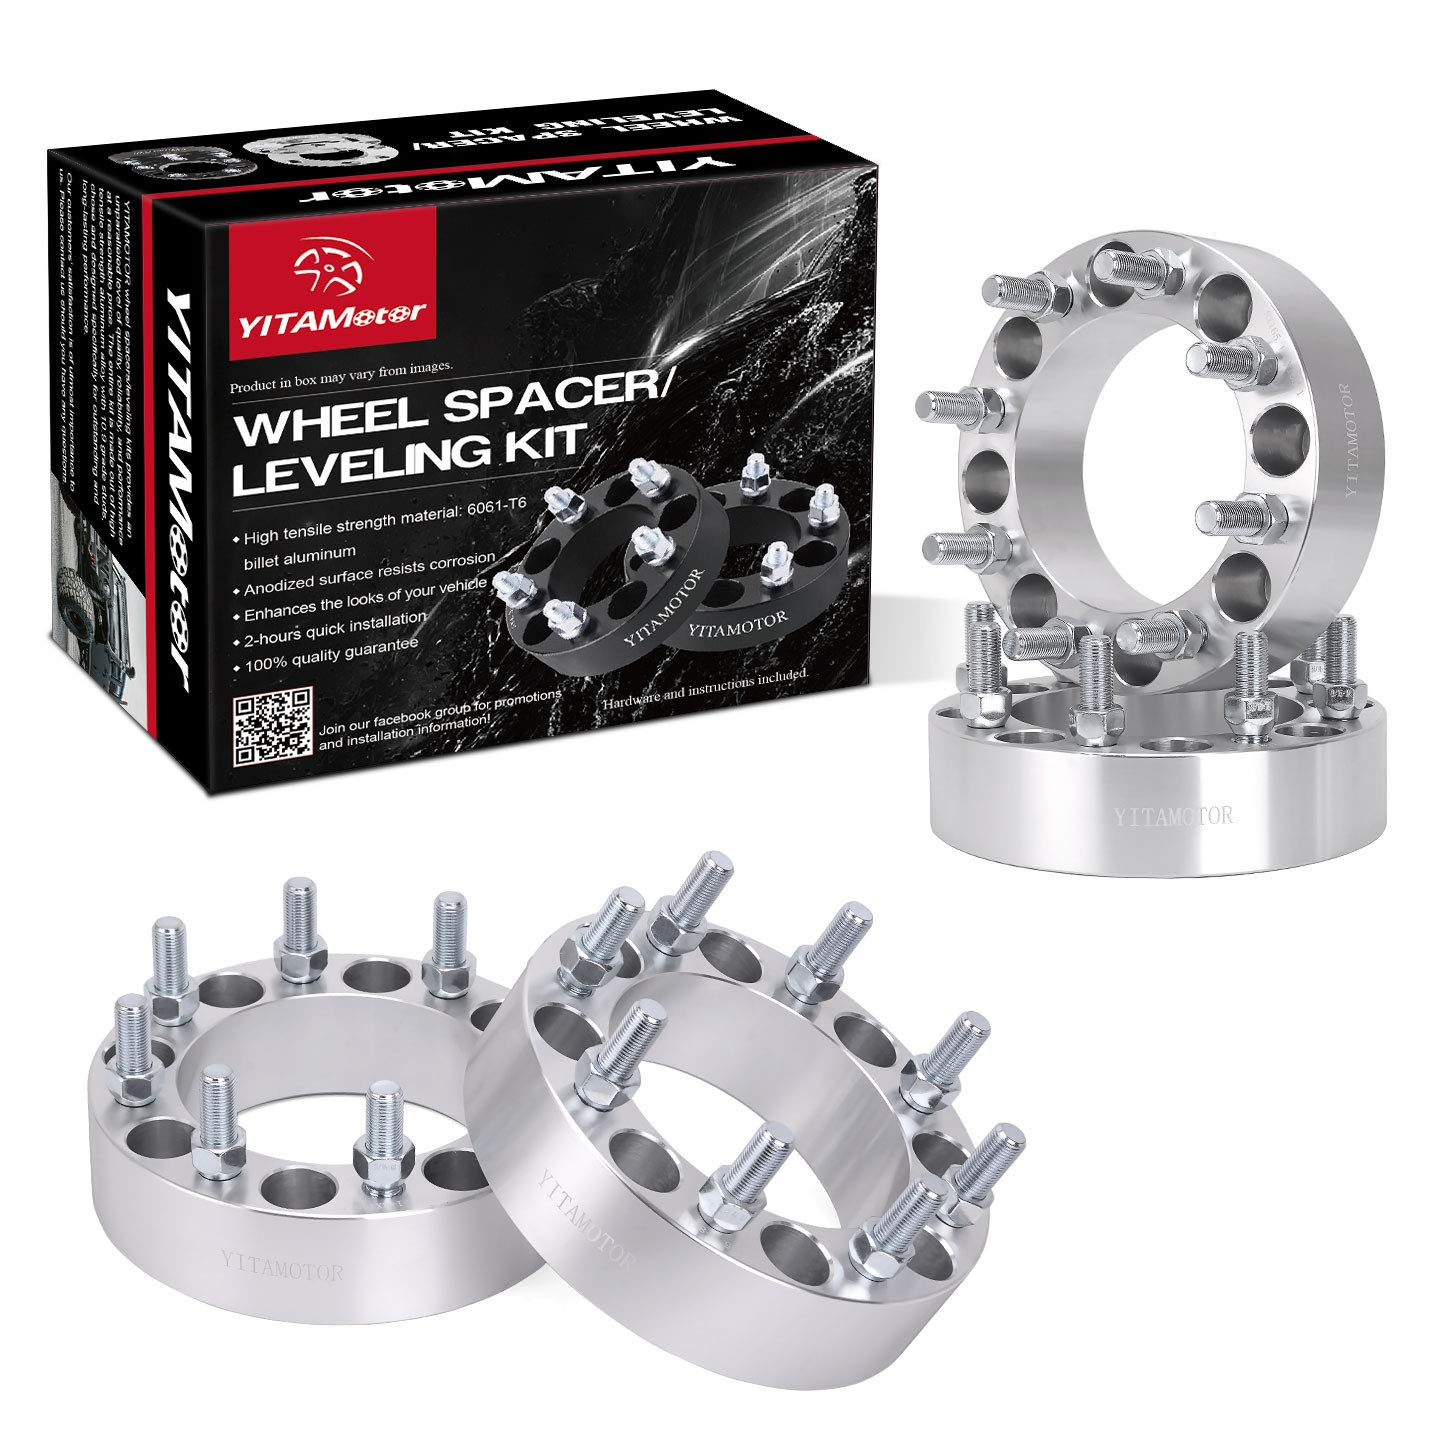 """8x6.5 Wheel Spacers, YITAMOTOR 4pcs 2"""" Wheel Spacers compatible for Dodge Ram 2500 3500 8 Lug 8x165.1 Wheel Spacers Adapters (9/16' Studs &130 mm Hub Bore)"""